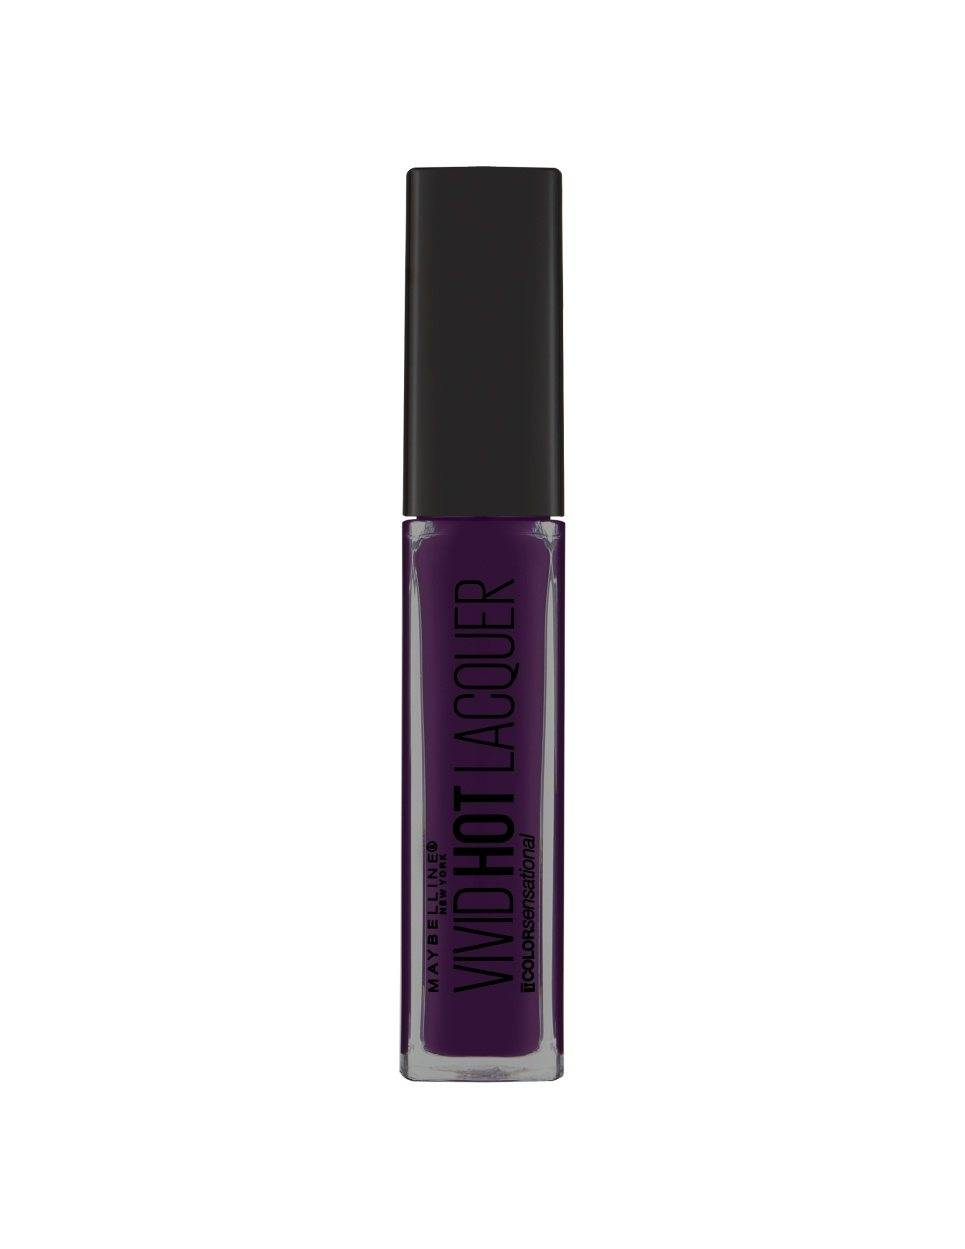 Color Sensational Vivid Hot Lacquer Liquid